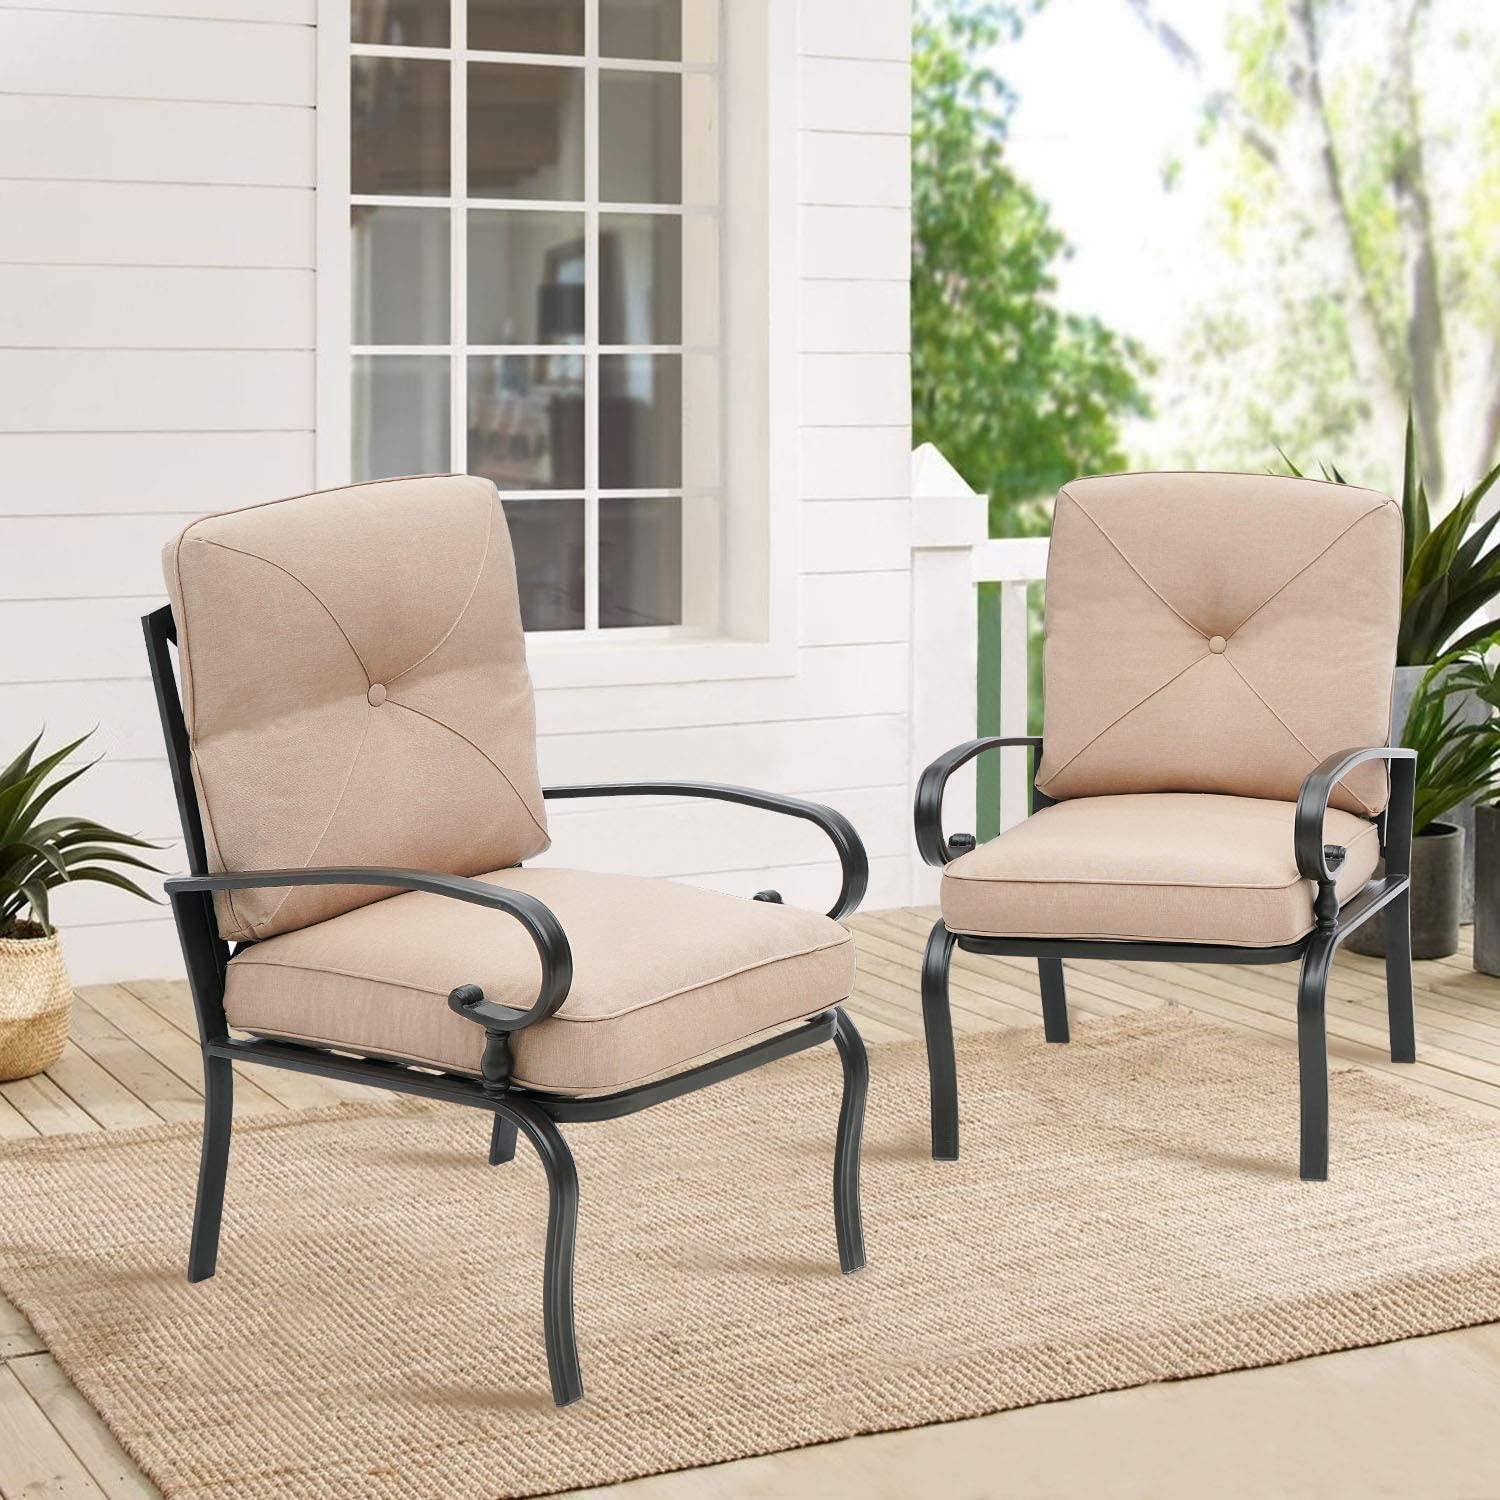 suncrown patio chairs metal dining chair outdoor black wrought iron bistro sets with brown patio furniture cushions set of 2 walmart com